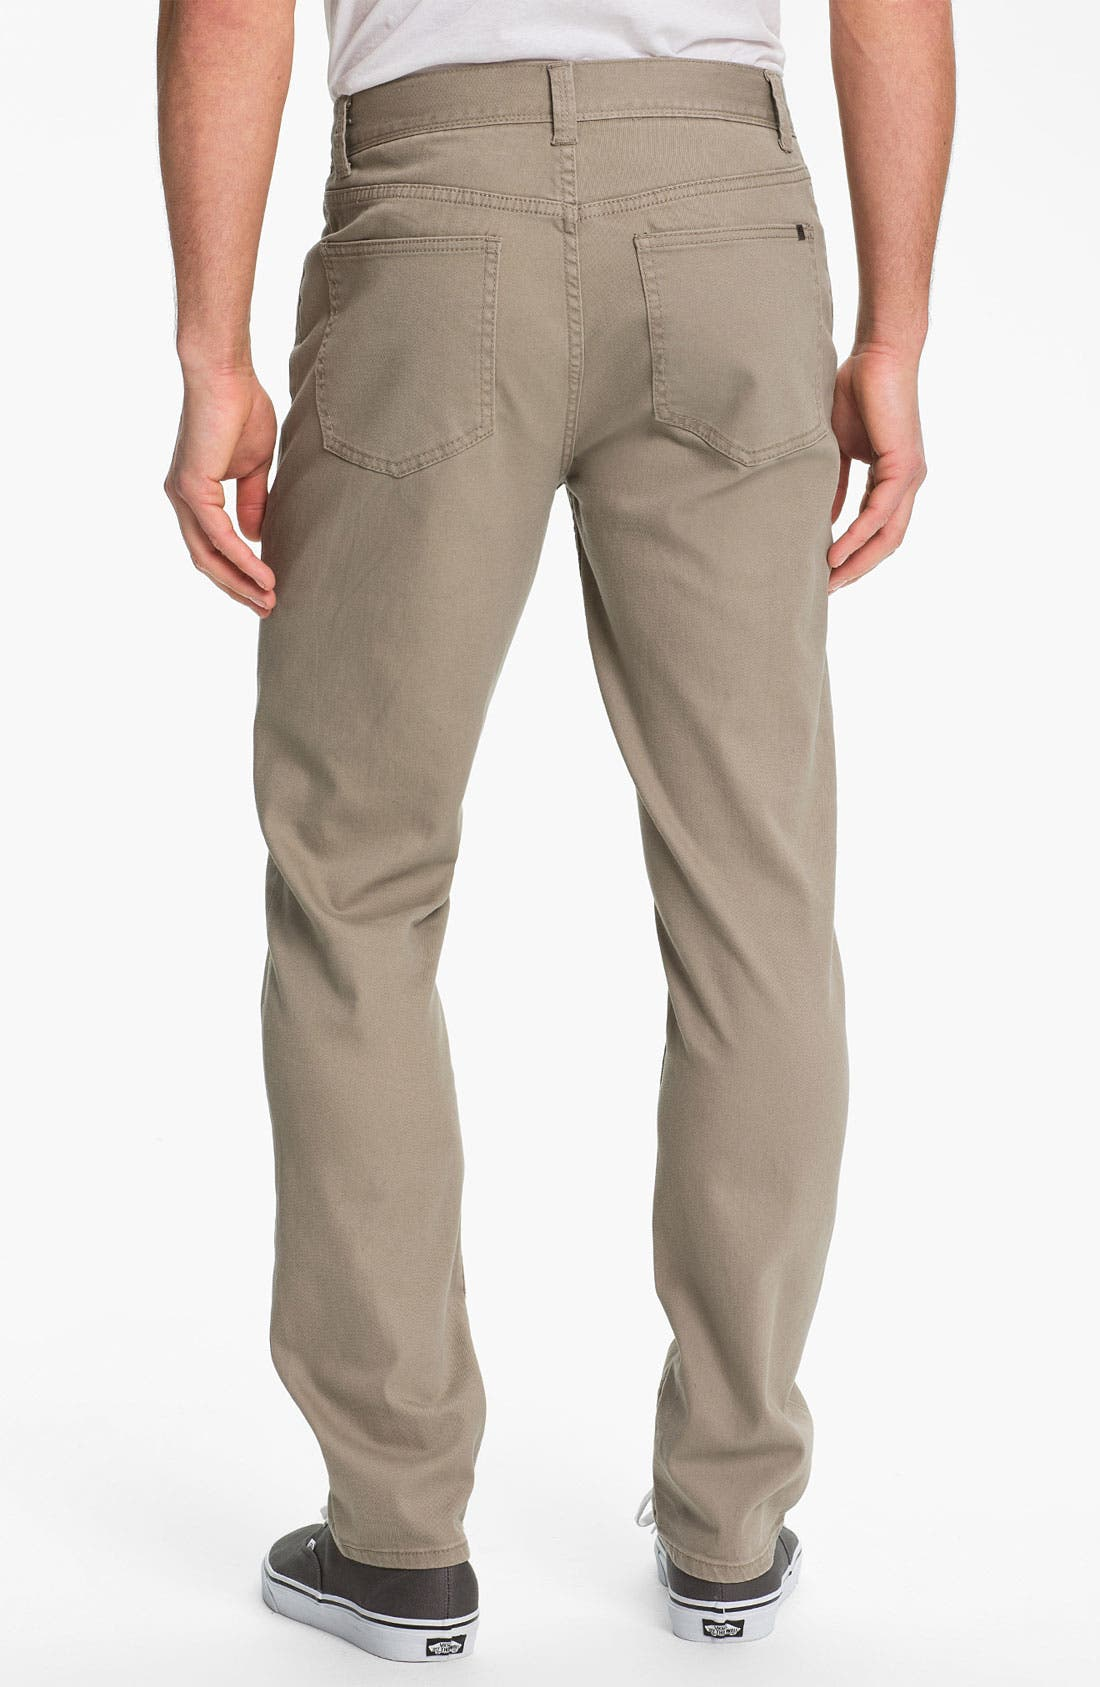 Alternate Image 1 Selected - O'Neill 'Dylan' Slim Five Pocket Pants